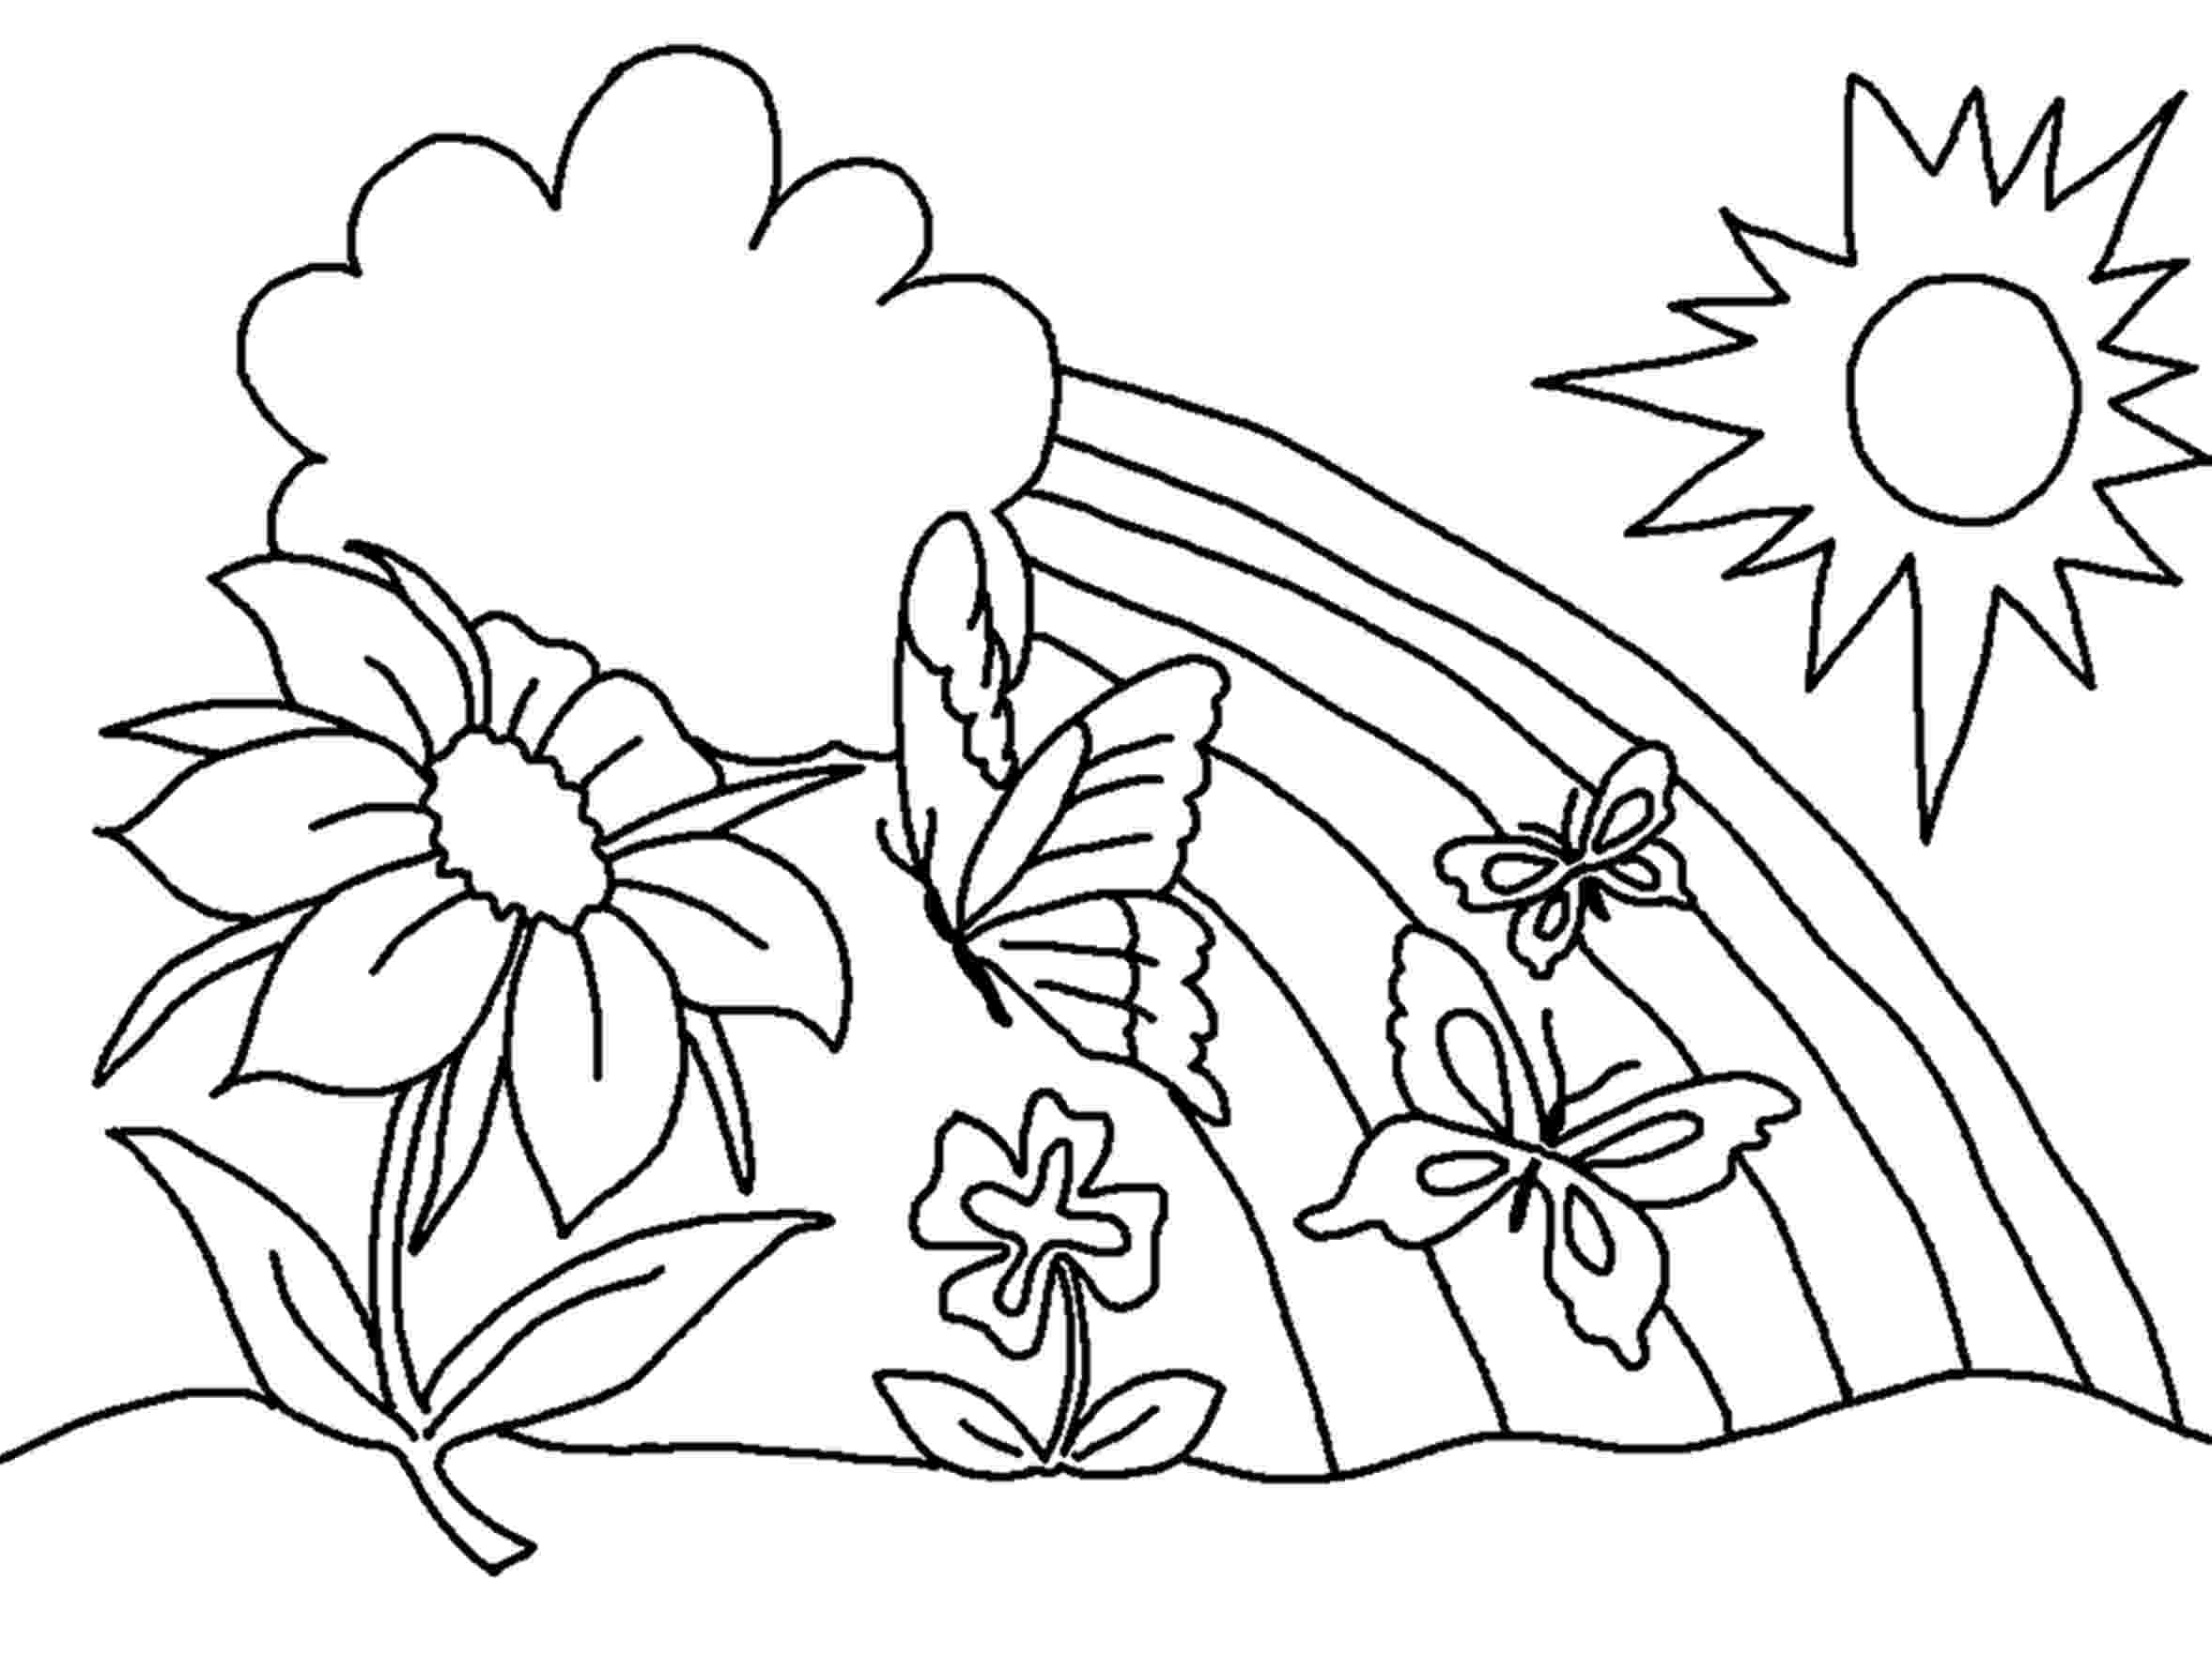 picture of flower for colouring wild flowers to color picture of colouring flower for